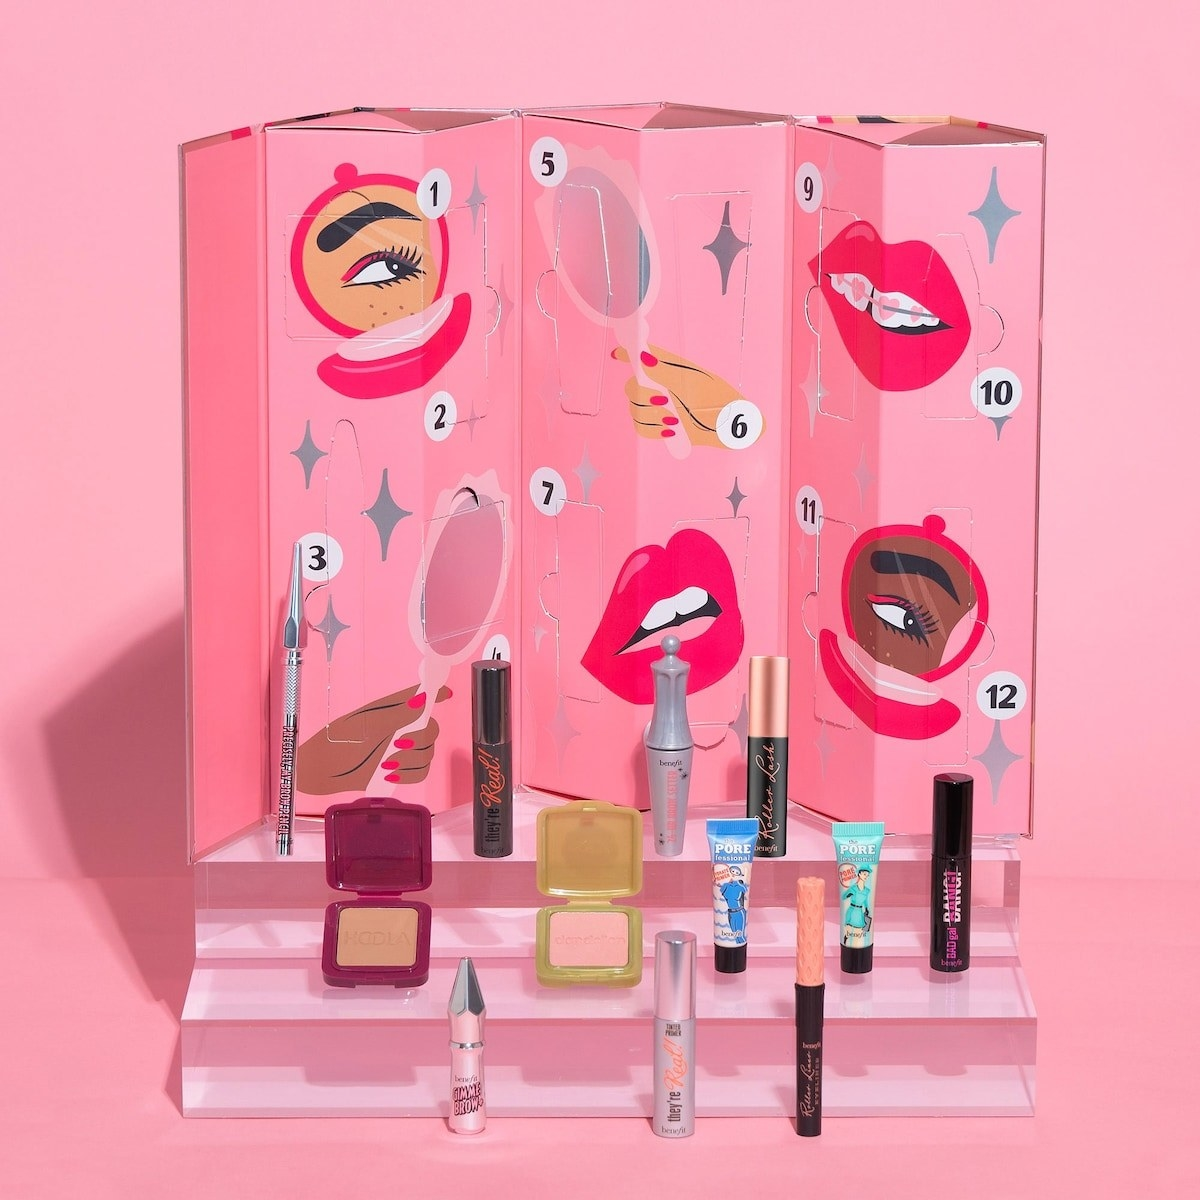 a pink fold out piece of cardboard with 12 flaps to reveal tiny beauty products